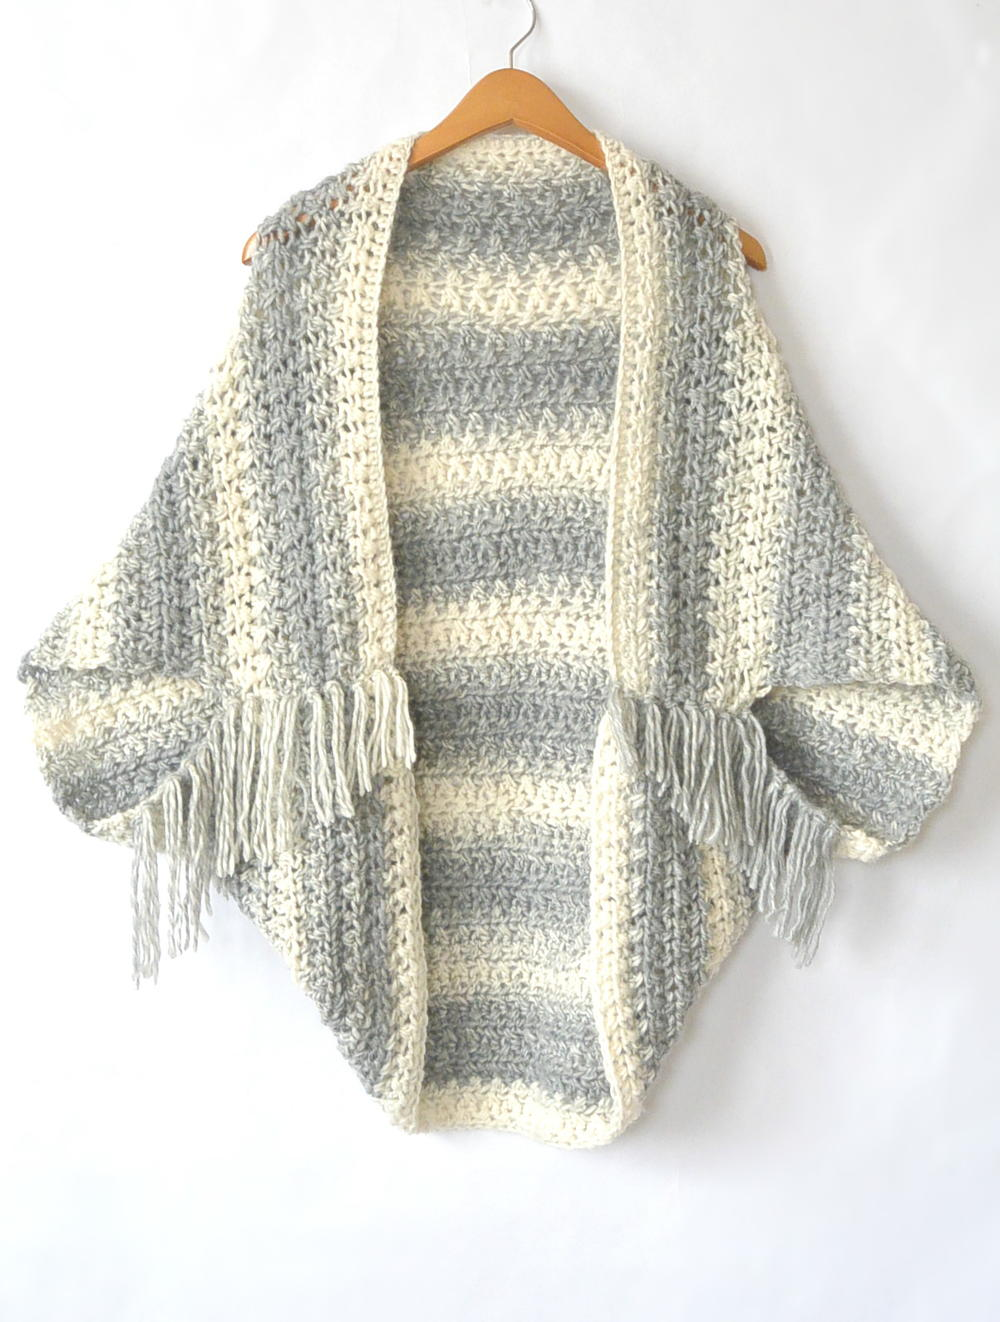 Easy Light Frost Crochet Blanket Sweater Shrug | AllFreeCrochet.com